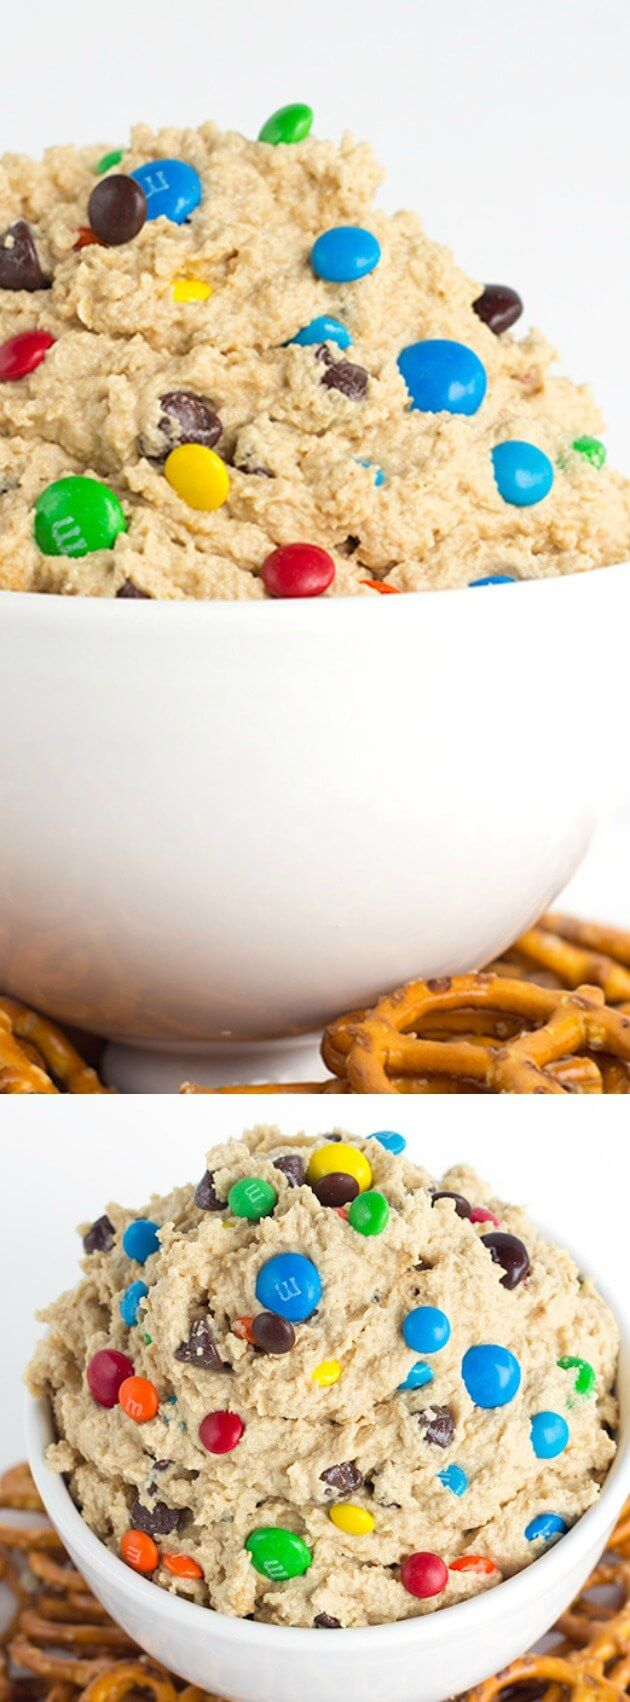 This Monster Cookie Dough Dip from Cookie Dough and Oven Mitt is the best treat ever. It's loaded with peanut butter, oatmeal, candies, and chocolate chips!